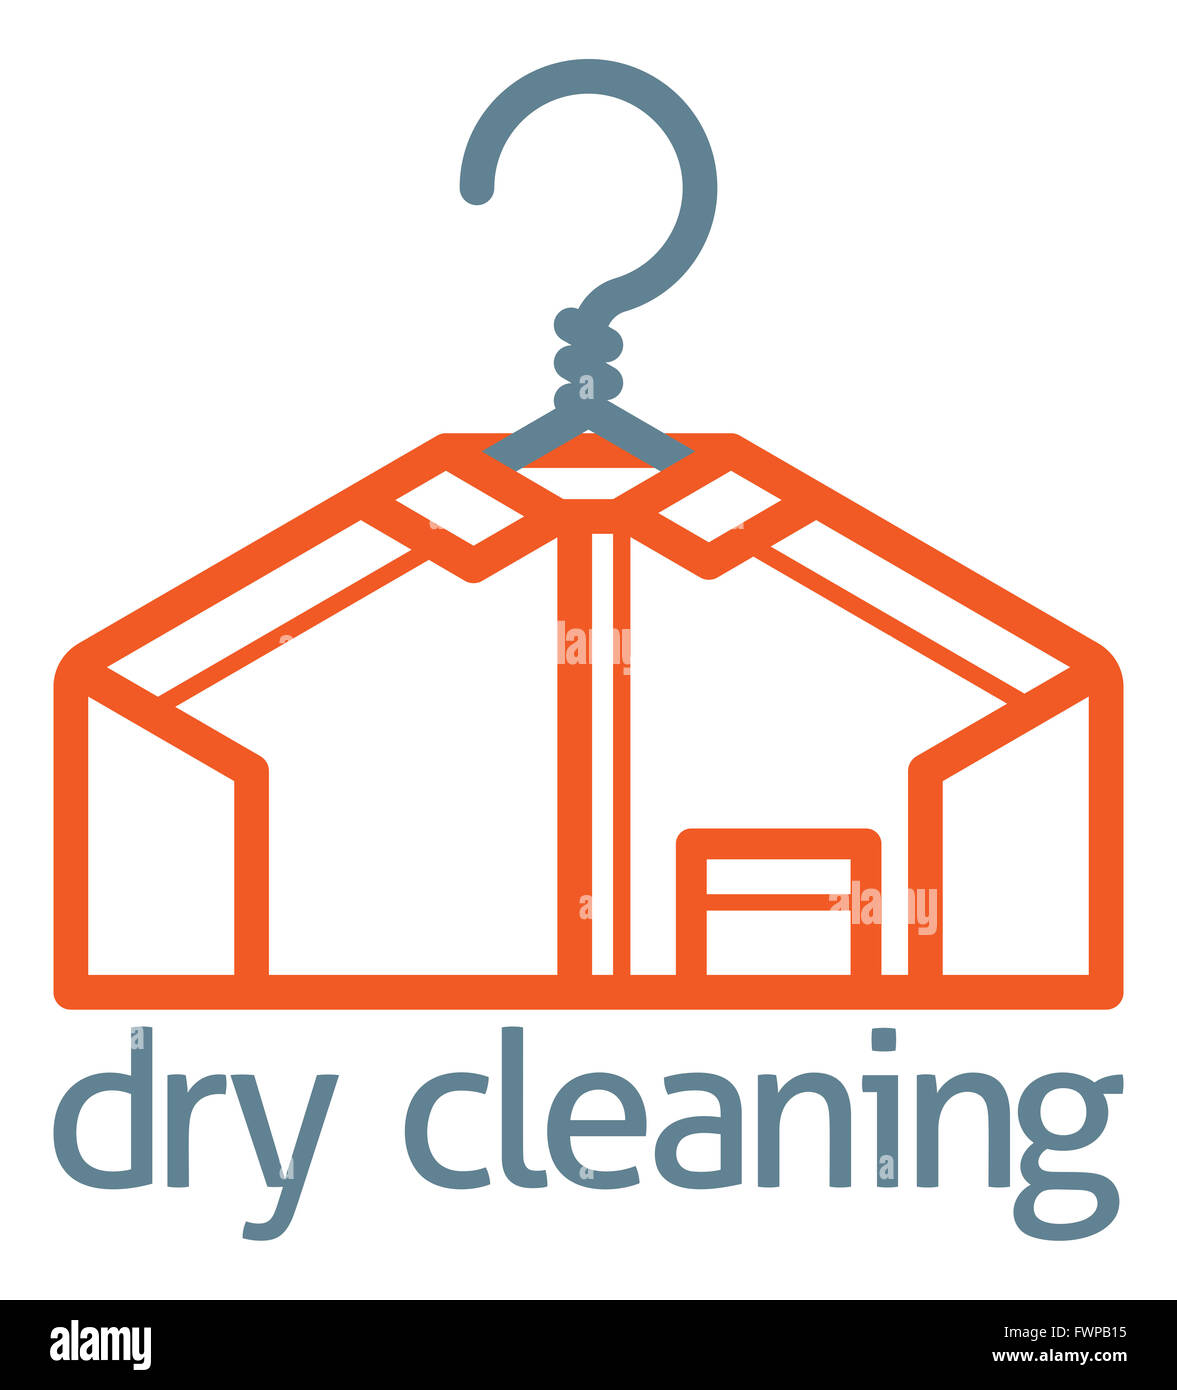 A Dry Cleaning Clothes Hanger Shirt Concept Icon Of A Stylised Shirt